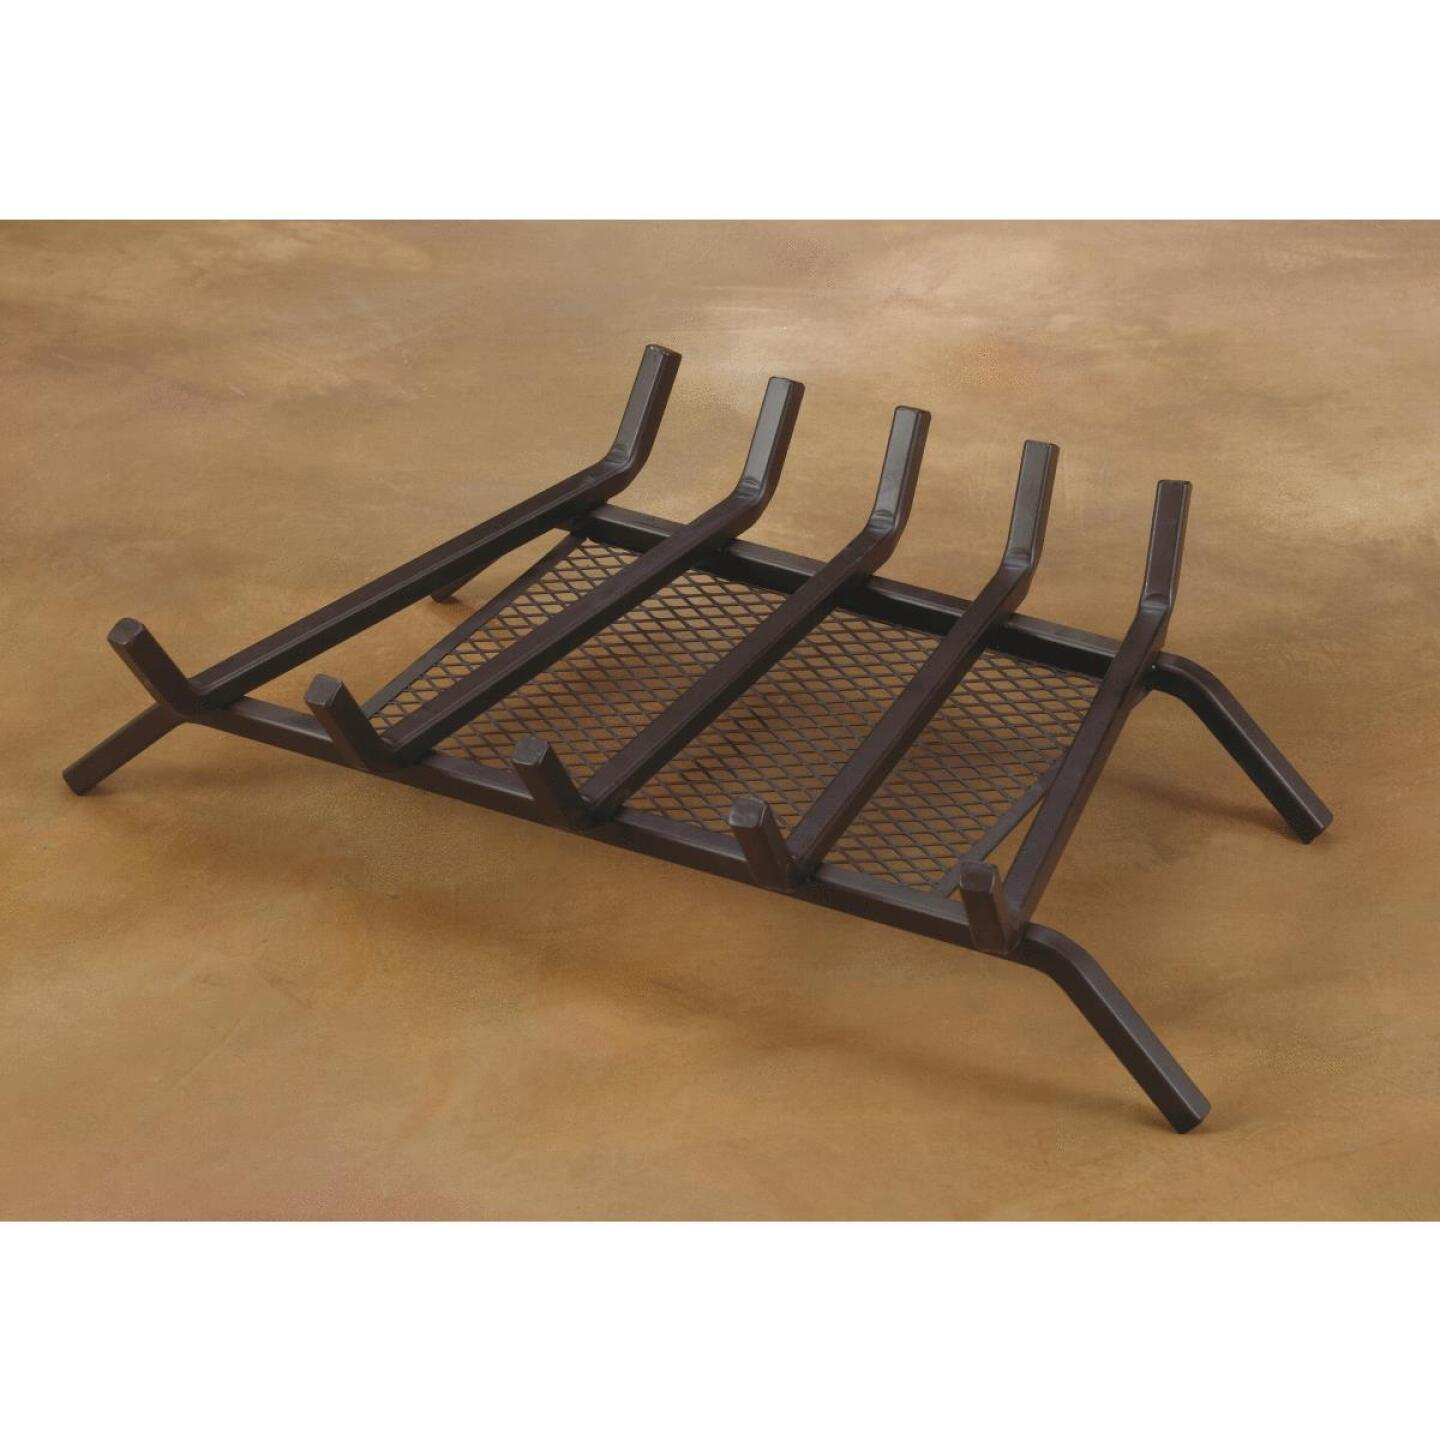 Home Impressions 24 In. Steel Fireplace Grate with Ember Screen Image 2